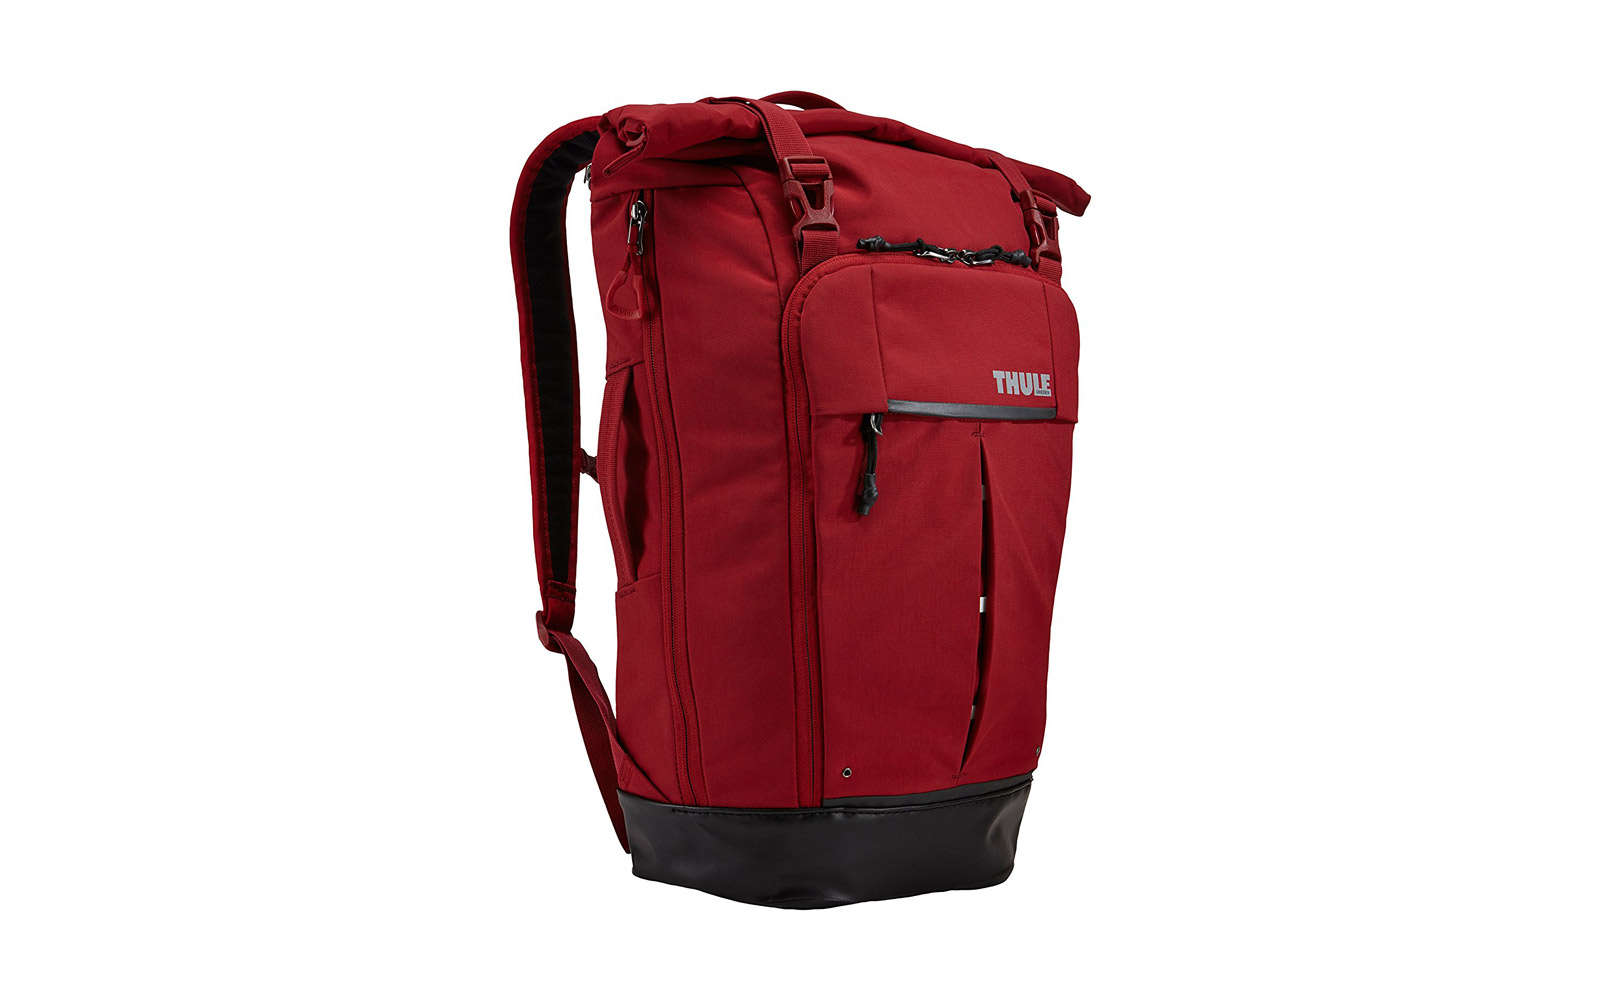 3bfc3faf1 The Best Laptop Backpacks for Travel, According to Frequent Fliers ...